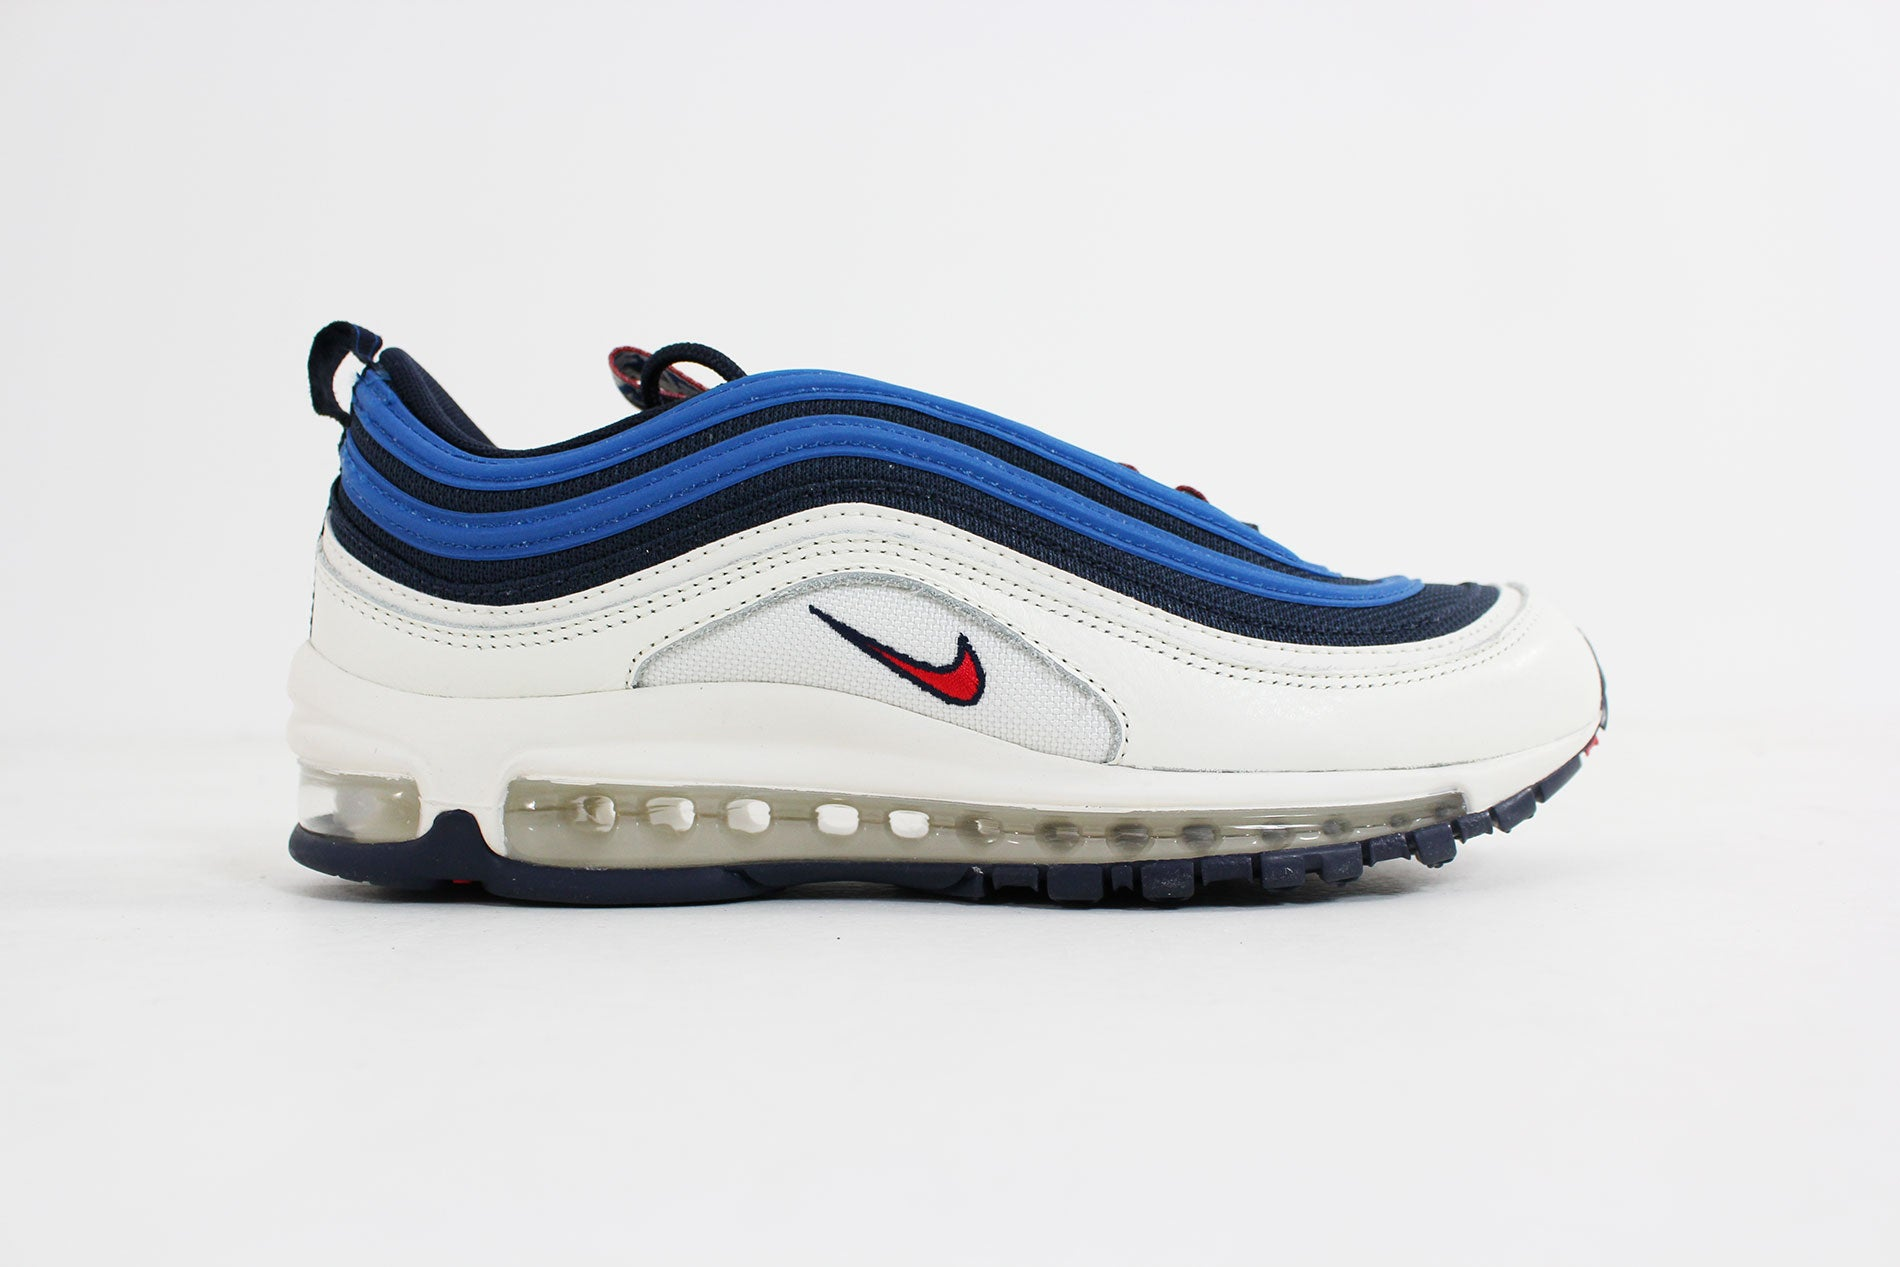 27c61cc564 Nike - Air Max 97 SE (Obsidian/ University Red-Sail Blue Nebula). Nike - Air  Max 97 SE (Obsidian/ University Red-Sail Blue Nebula)